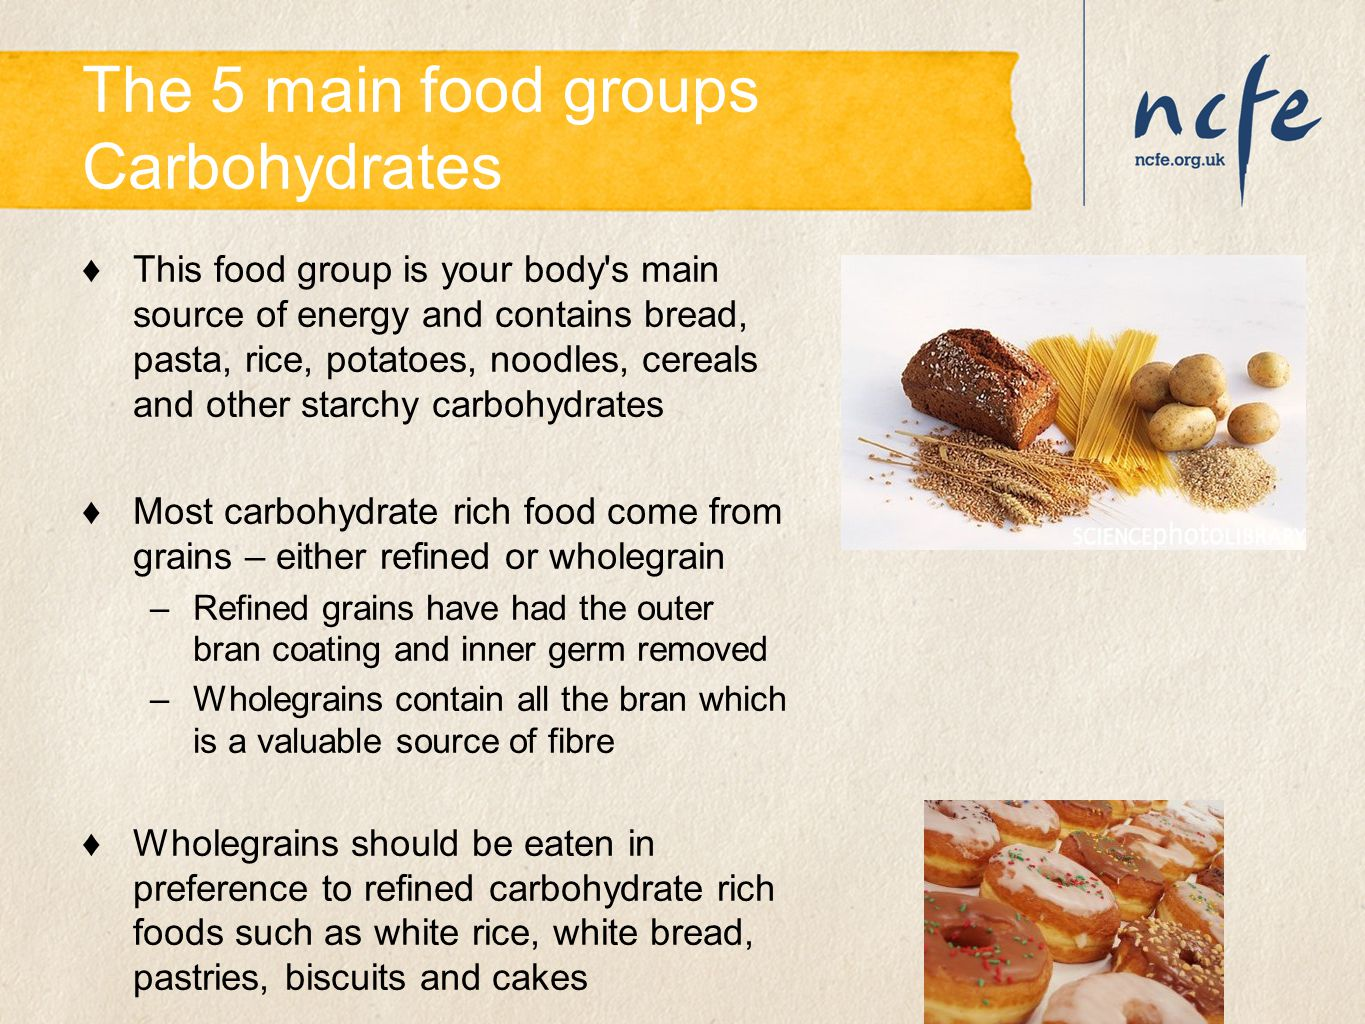 The 5 main food groups Carbohydrates ♦This food group is your body's main source of energy and contains bread, pasta, rice, potatoes, noodles, cereals